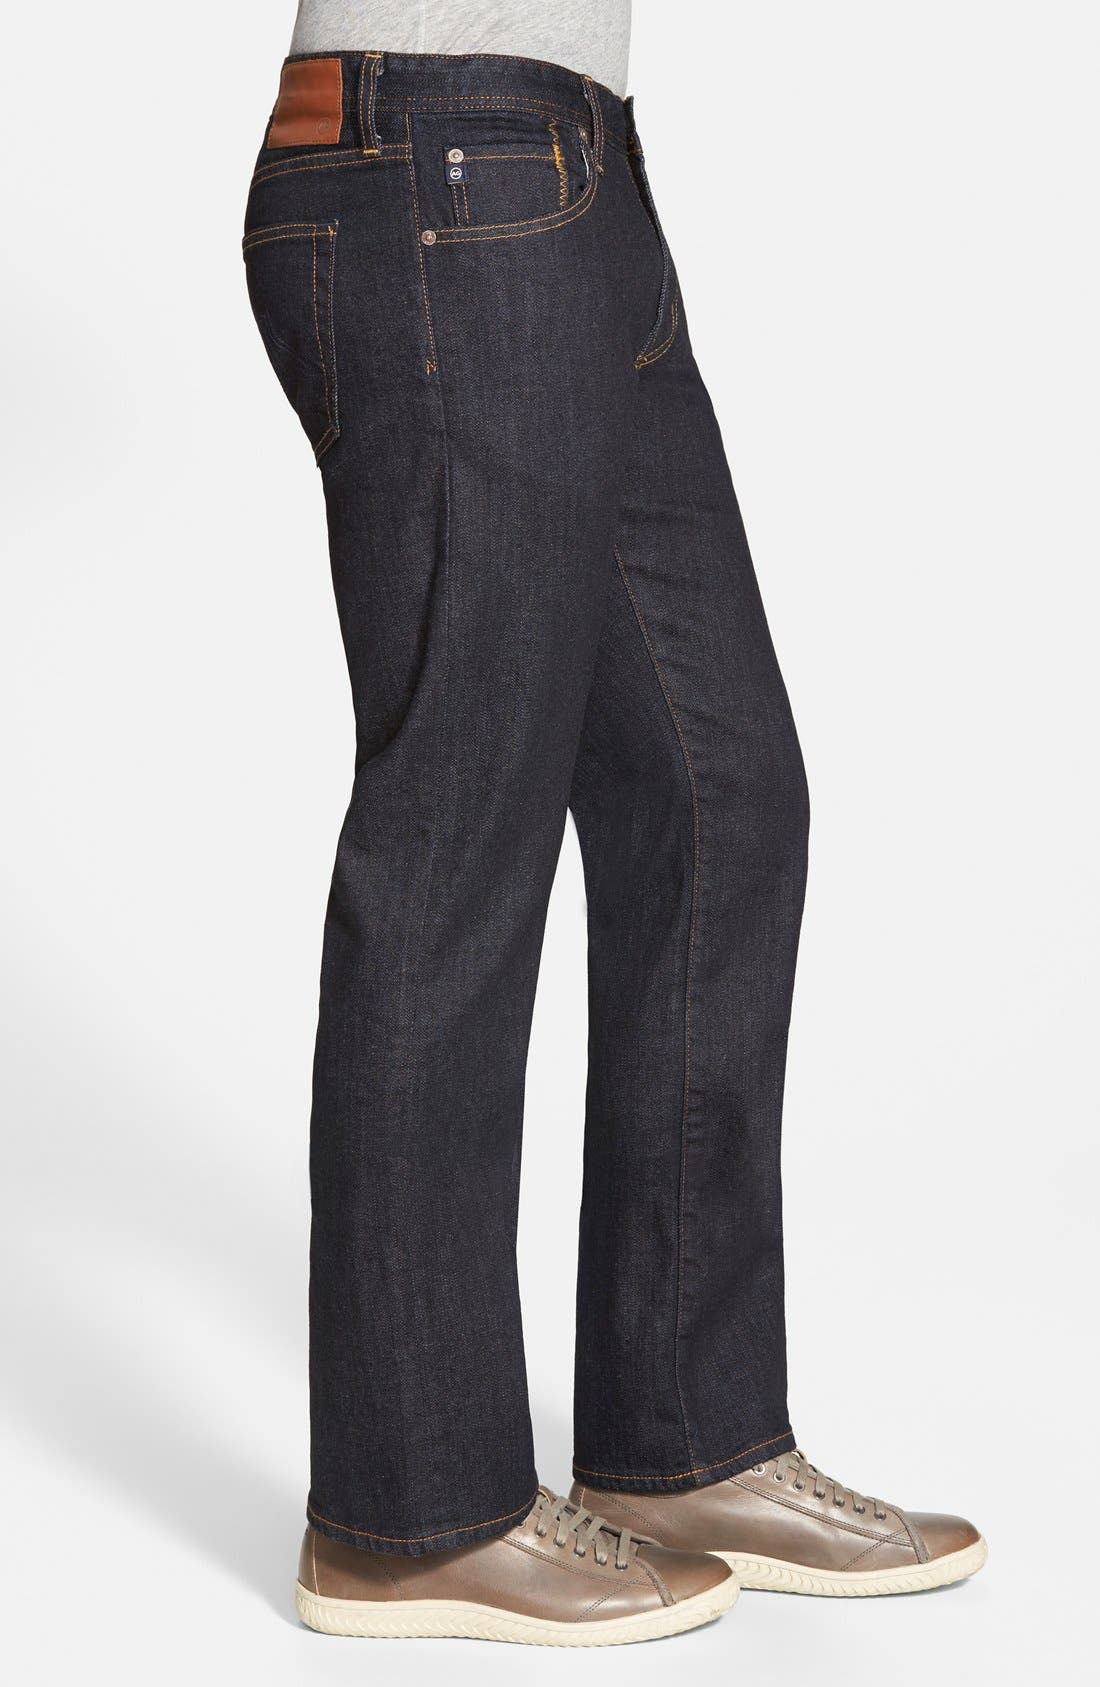 Protégé Straight Leg Jeans,                             Alternate thumbnail 3, color,                             Jack